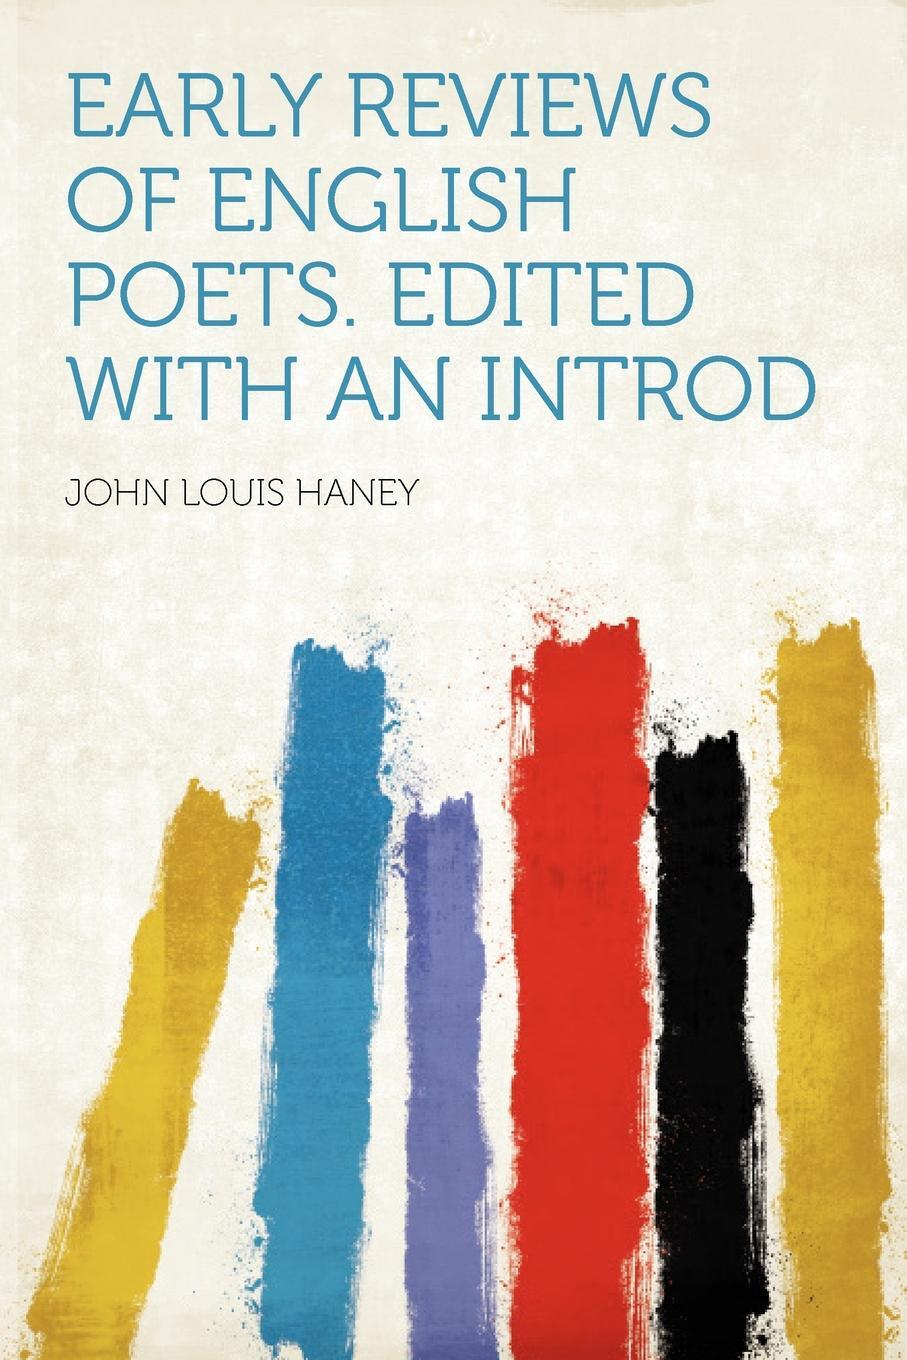 Early Reviews of English Poets. Edited With an Introd. John Louis Haney